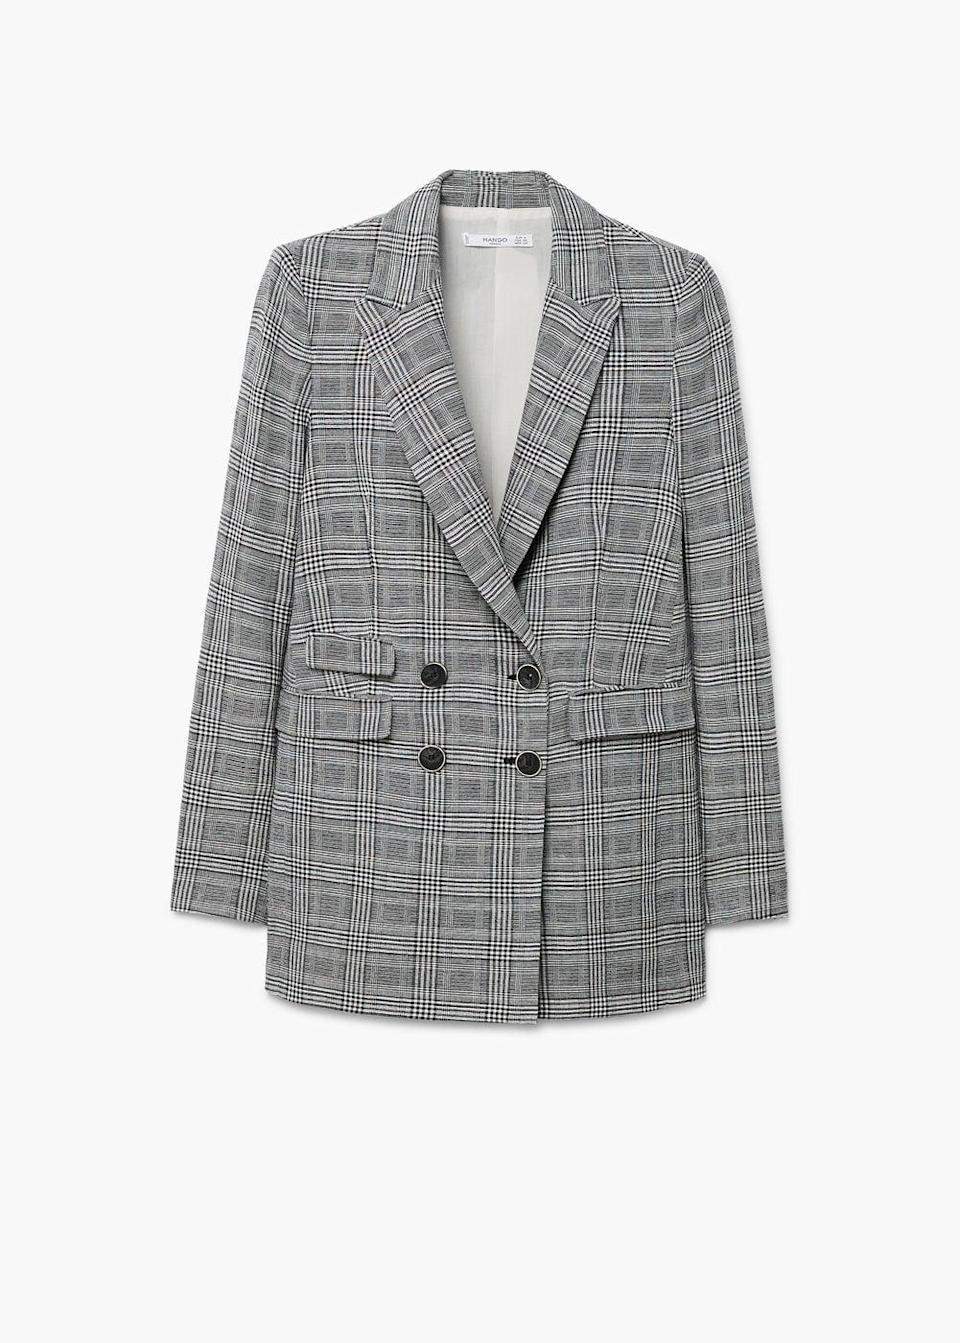 """<p>Prince of Wales check is making the rounds this fashion month so it's bound to make an appearance on the streets of London. We'll be wearing ours with a crisp white t-shirt and co-ordinating trousers.<br><br><em><a rel=""""nofollow noopener"""" href=""""https://shop.mango.com/gb/women/jackets-blazers/prince-of-wales-blazer_11025032.html?c=92&n=1&s=prendas.familia;4,304"""" target=""""_blank"""" data-ylk=""""slk:Mango"""" class=""""link rapid-noclick-resp"""">Mango</a>, £69.99</em> </p>"""